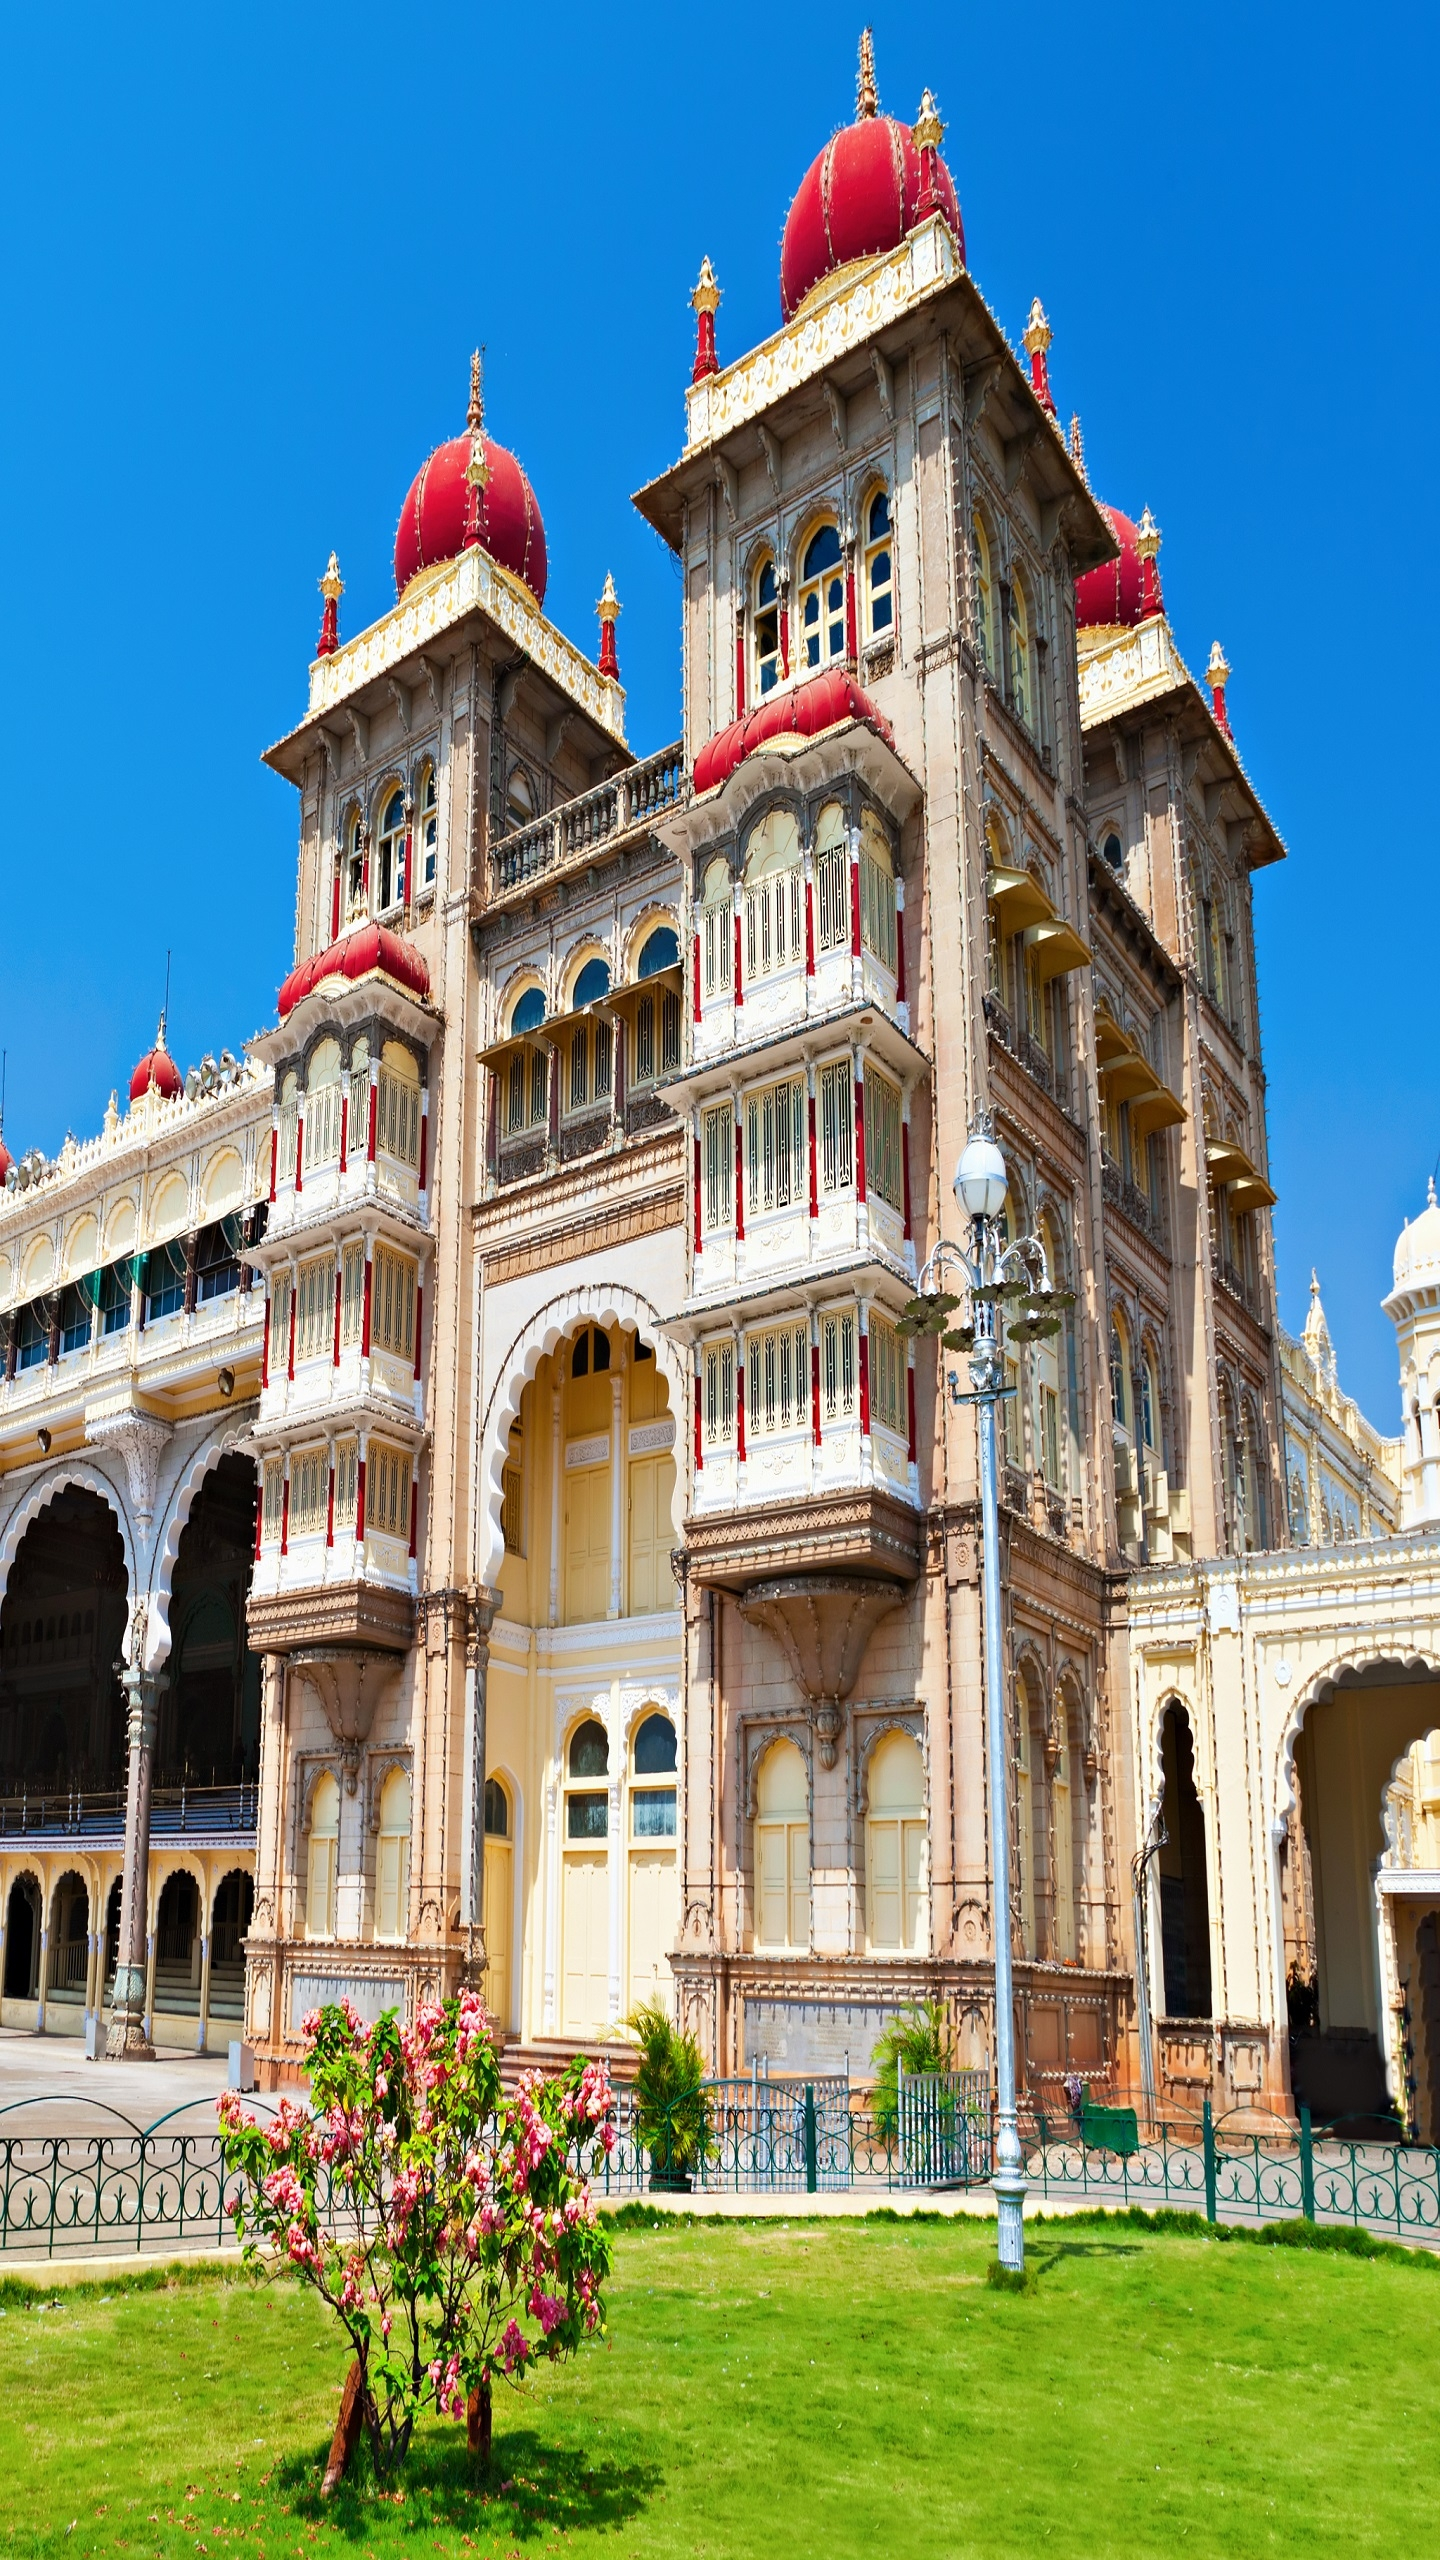 Hd Wallpapers Mysore Palace Wallpapers Hd 2170278 Hd Wallpaper Backgrounds Download